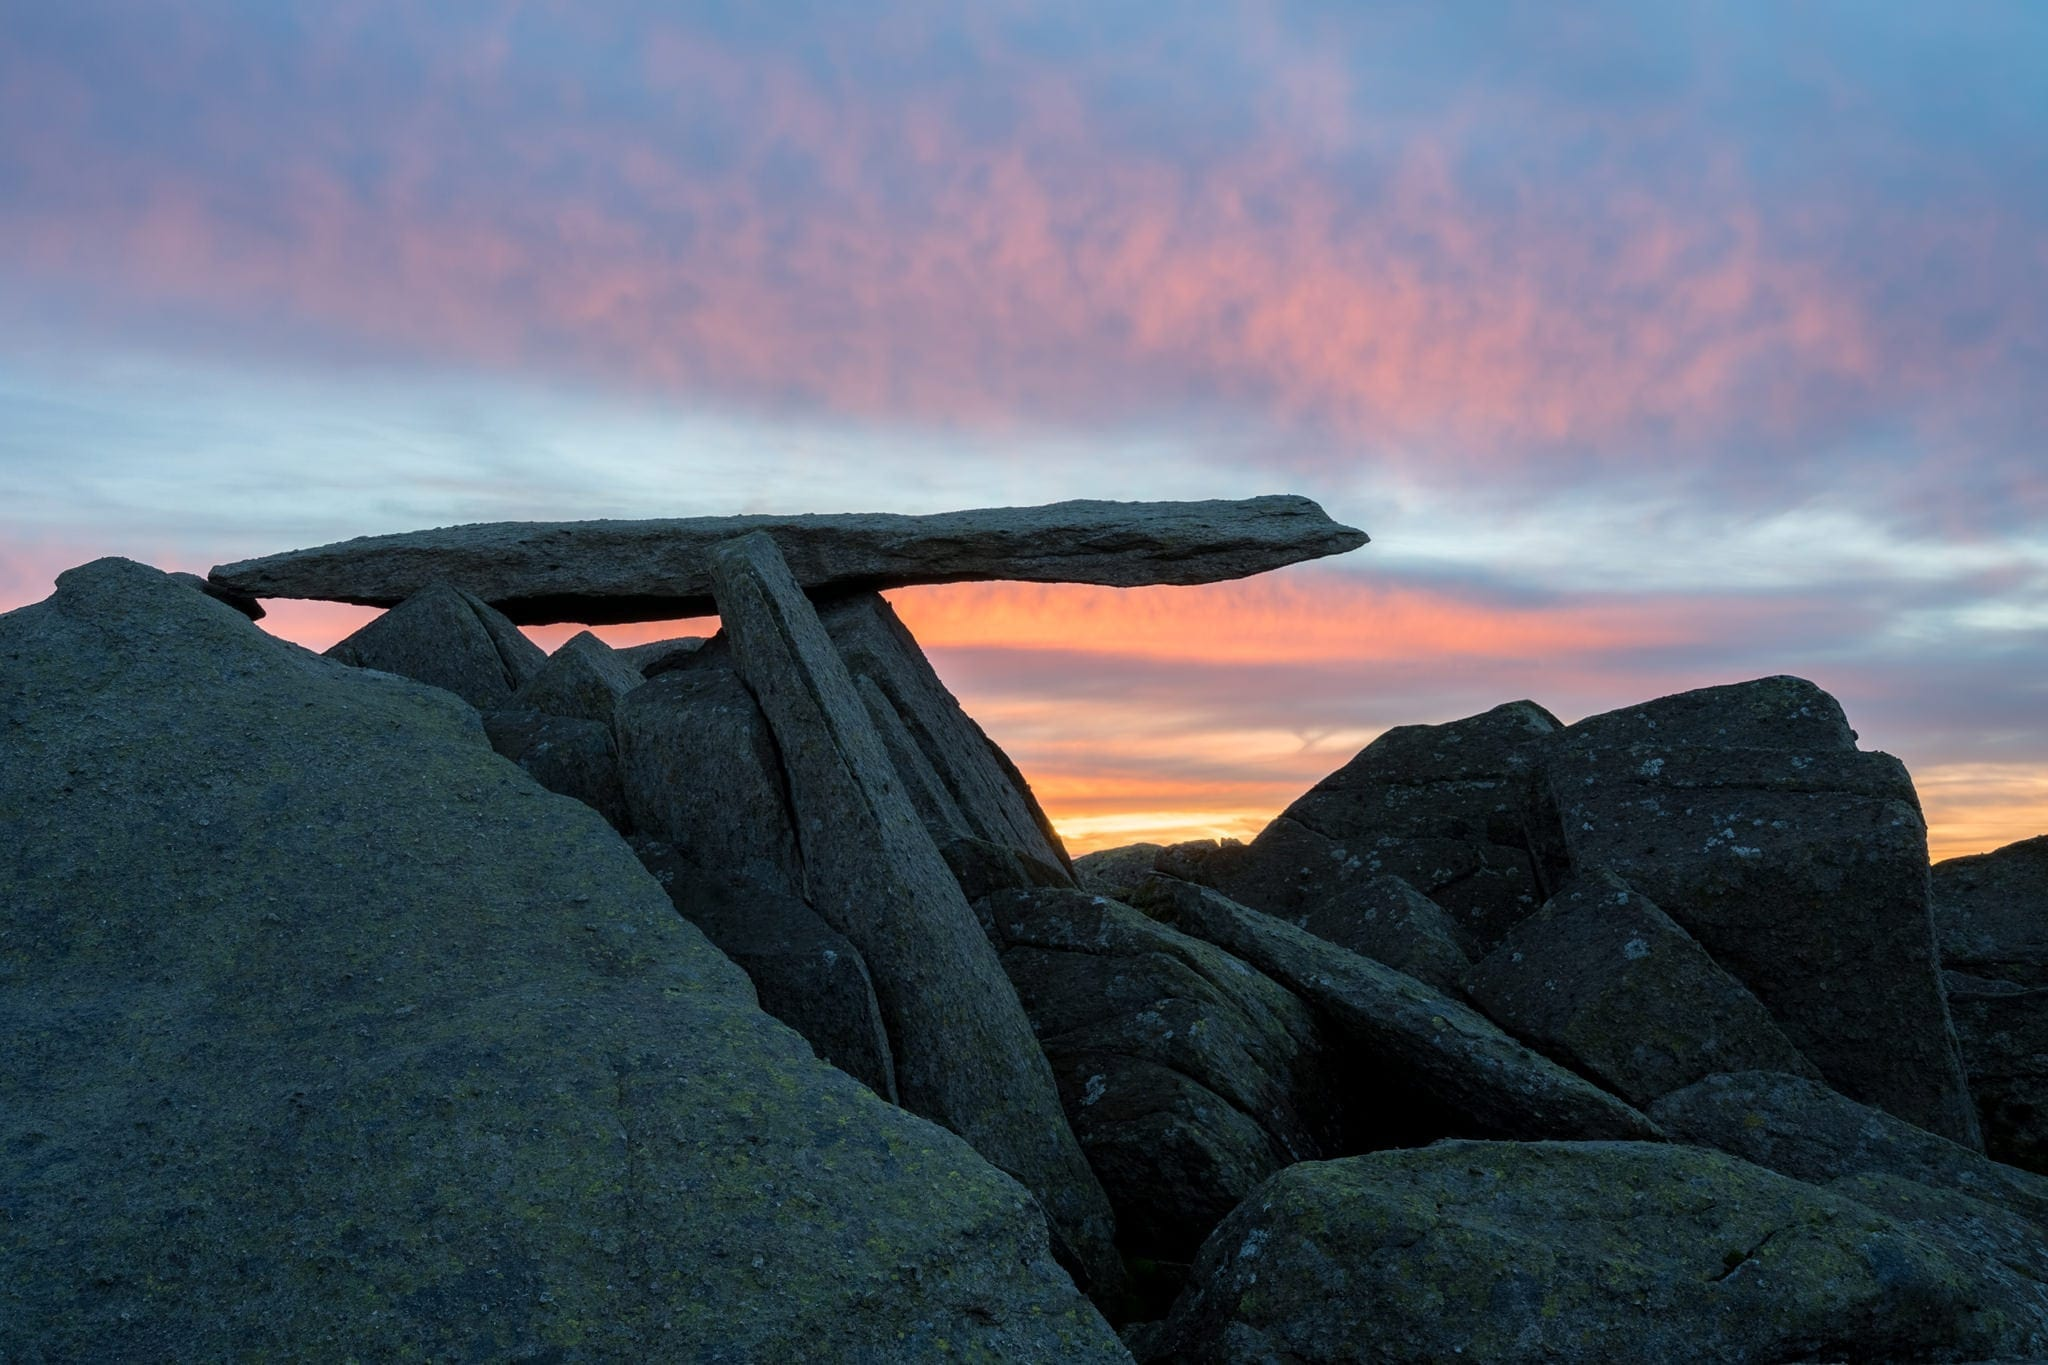 Cantilever Stone Sunrise - Snowdonia Wild Camping Photography Workshop